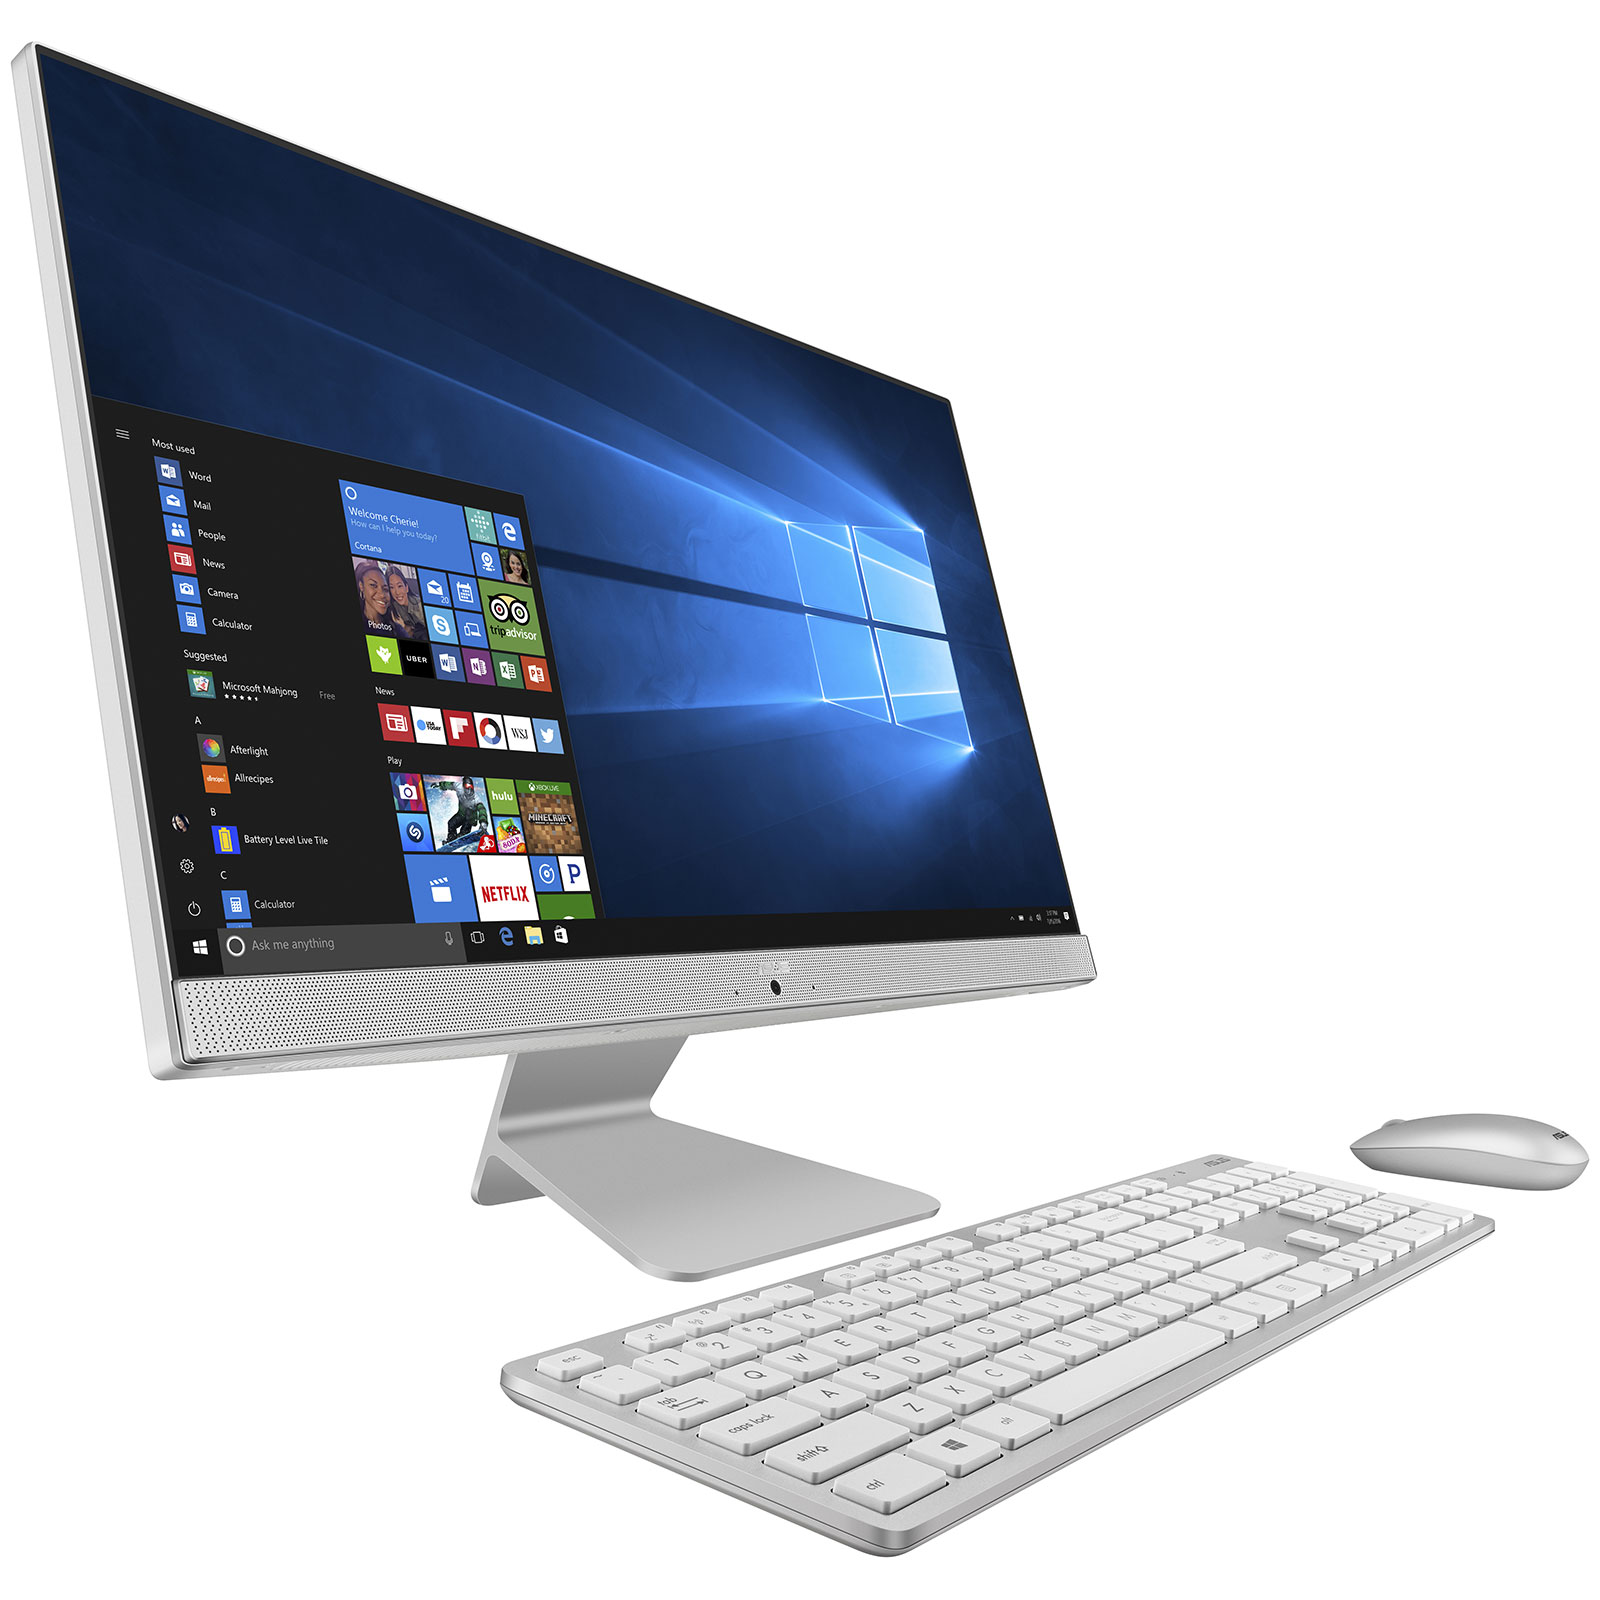 asus vivo aio v241icuk wa039t blanc pc de bureau asus sur. Black Bedroom Furniture Sets. Home Design Ideas